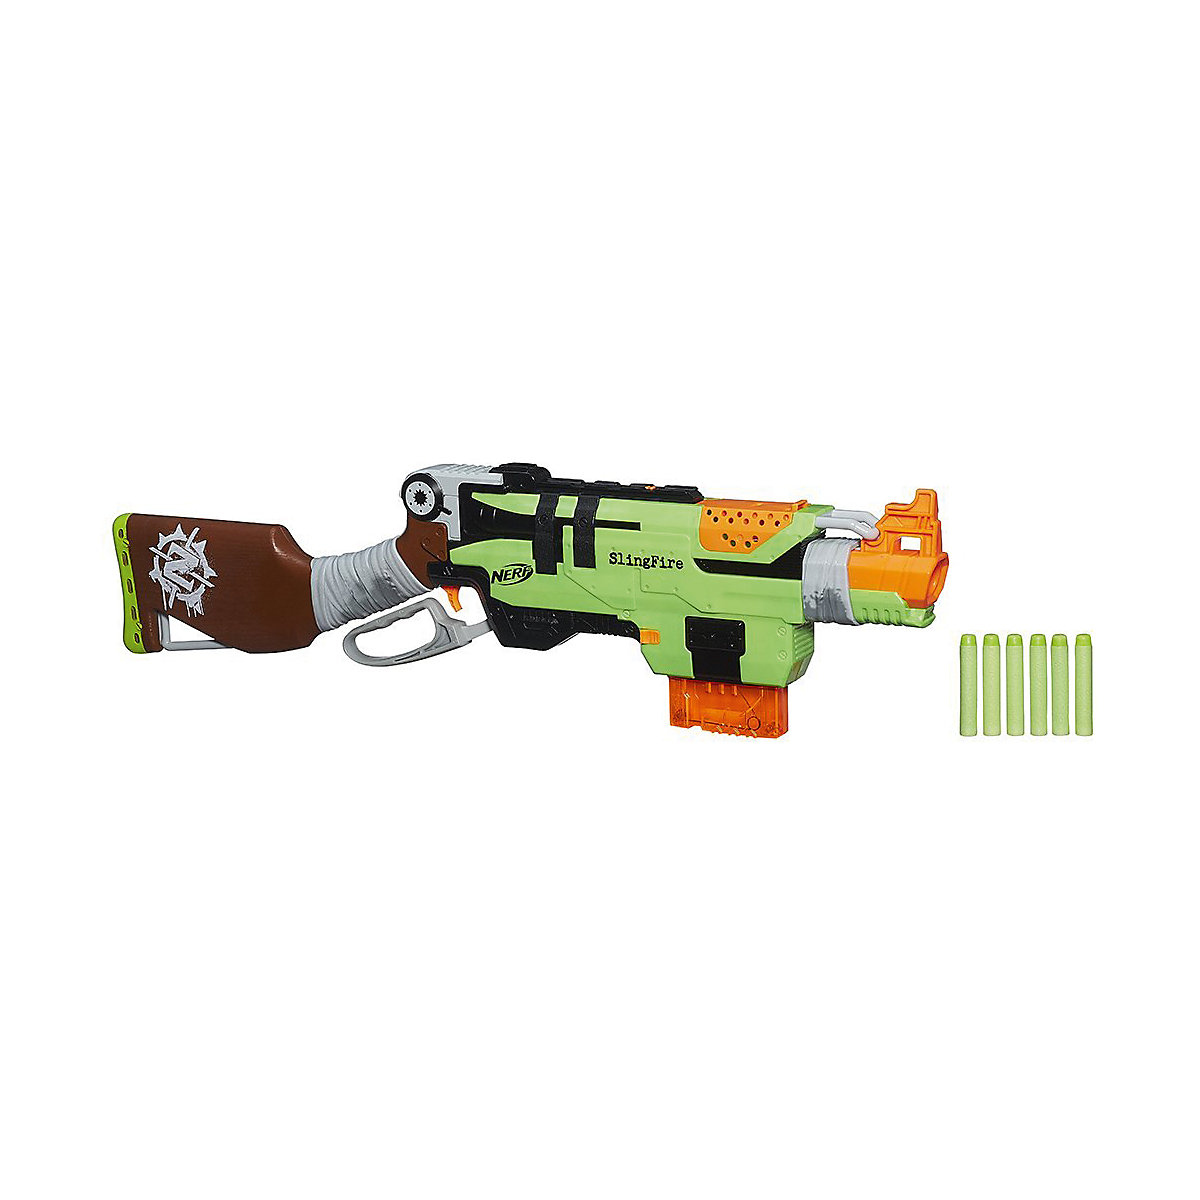 Toy Guns NERF 3550830 Children Kids Toy Gun Weapon Blasters Boys Shooting games Outdoor play children play house toy